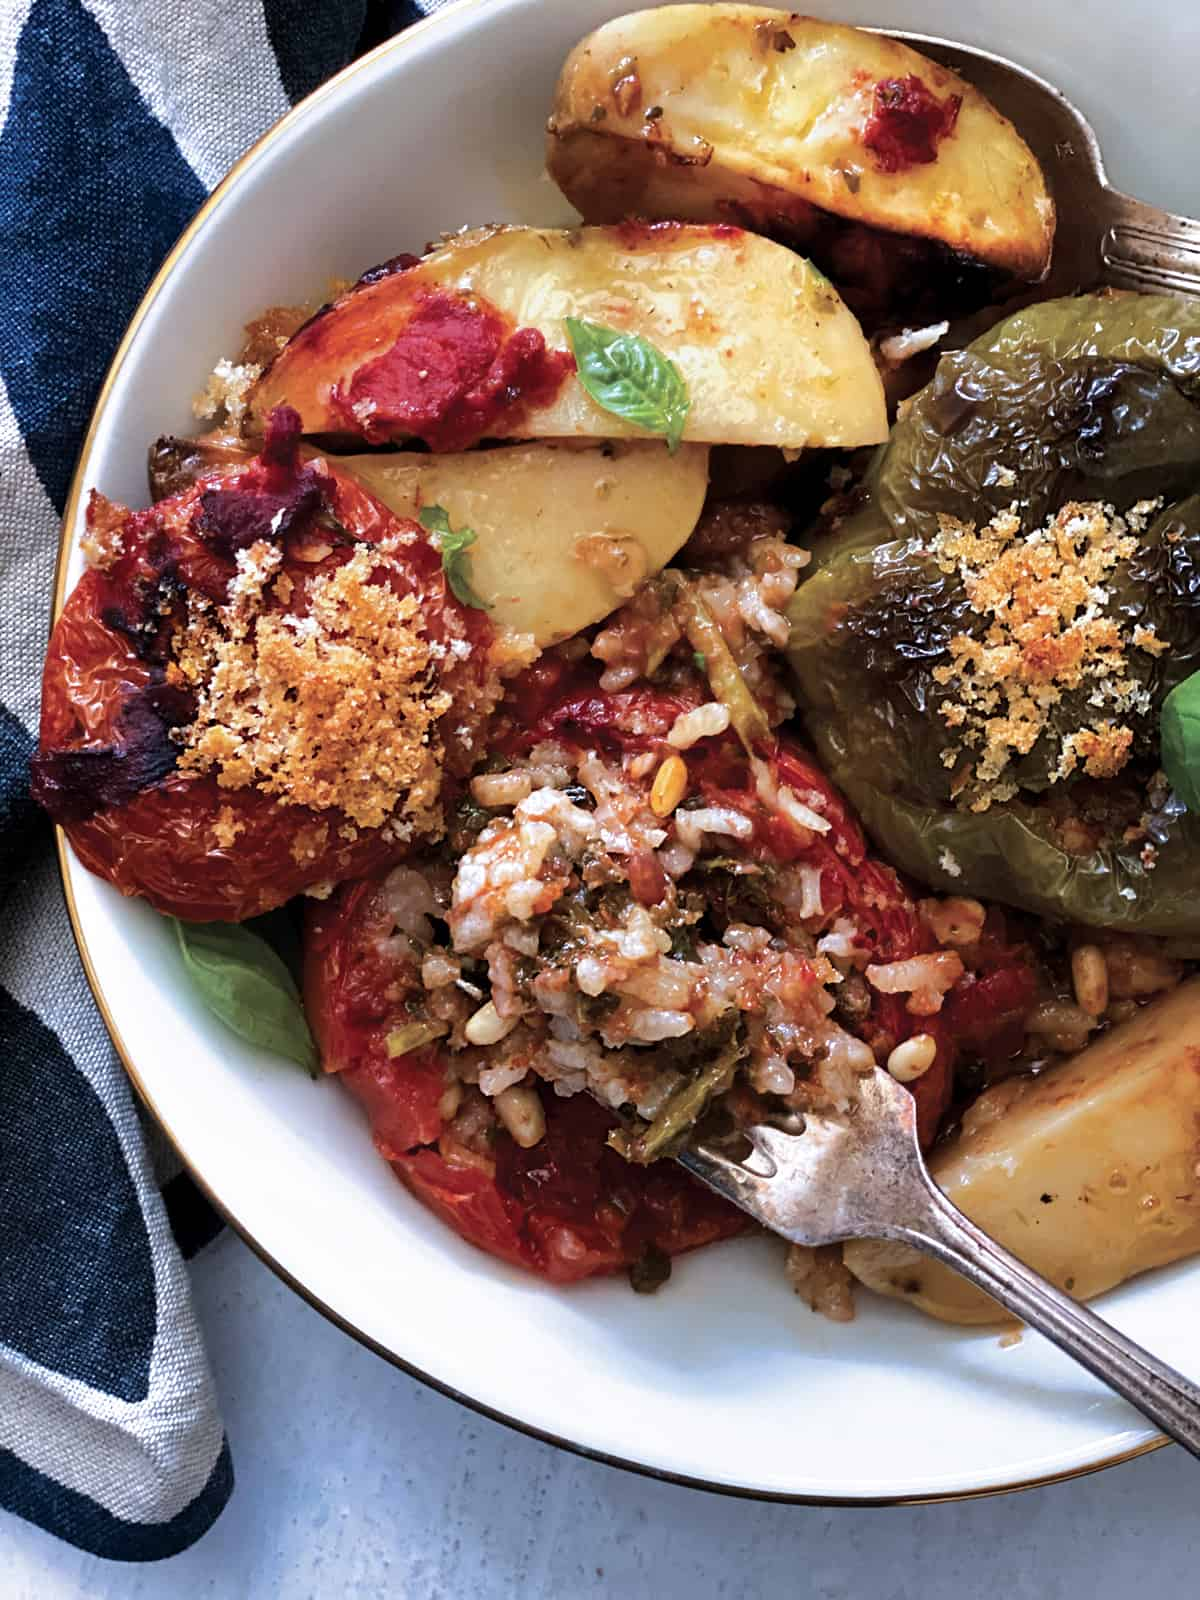 A plate with a stuffed tomato and a green bell pepper, potatoes, fresh herbs and a fork with some rice stuffing.